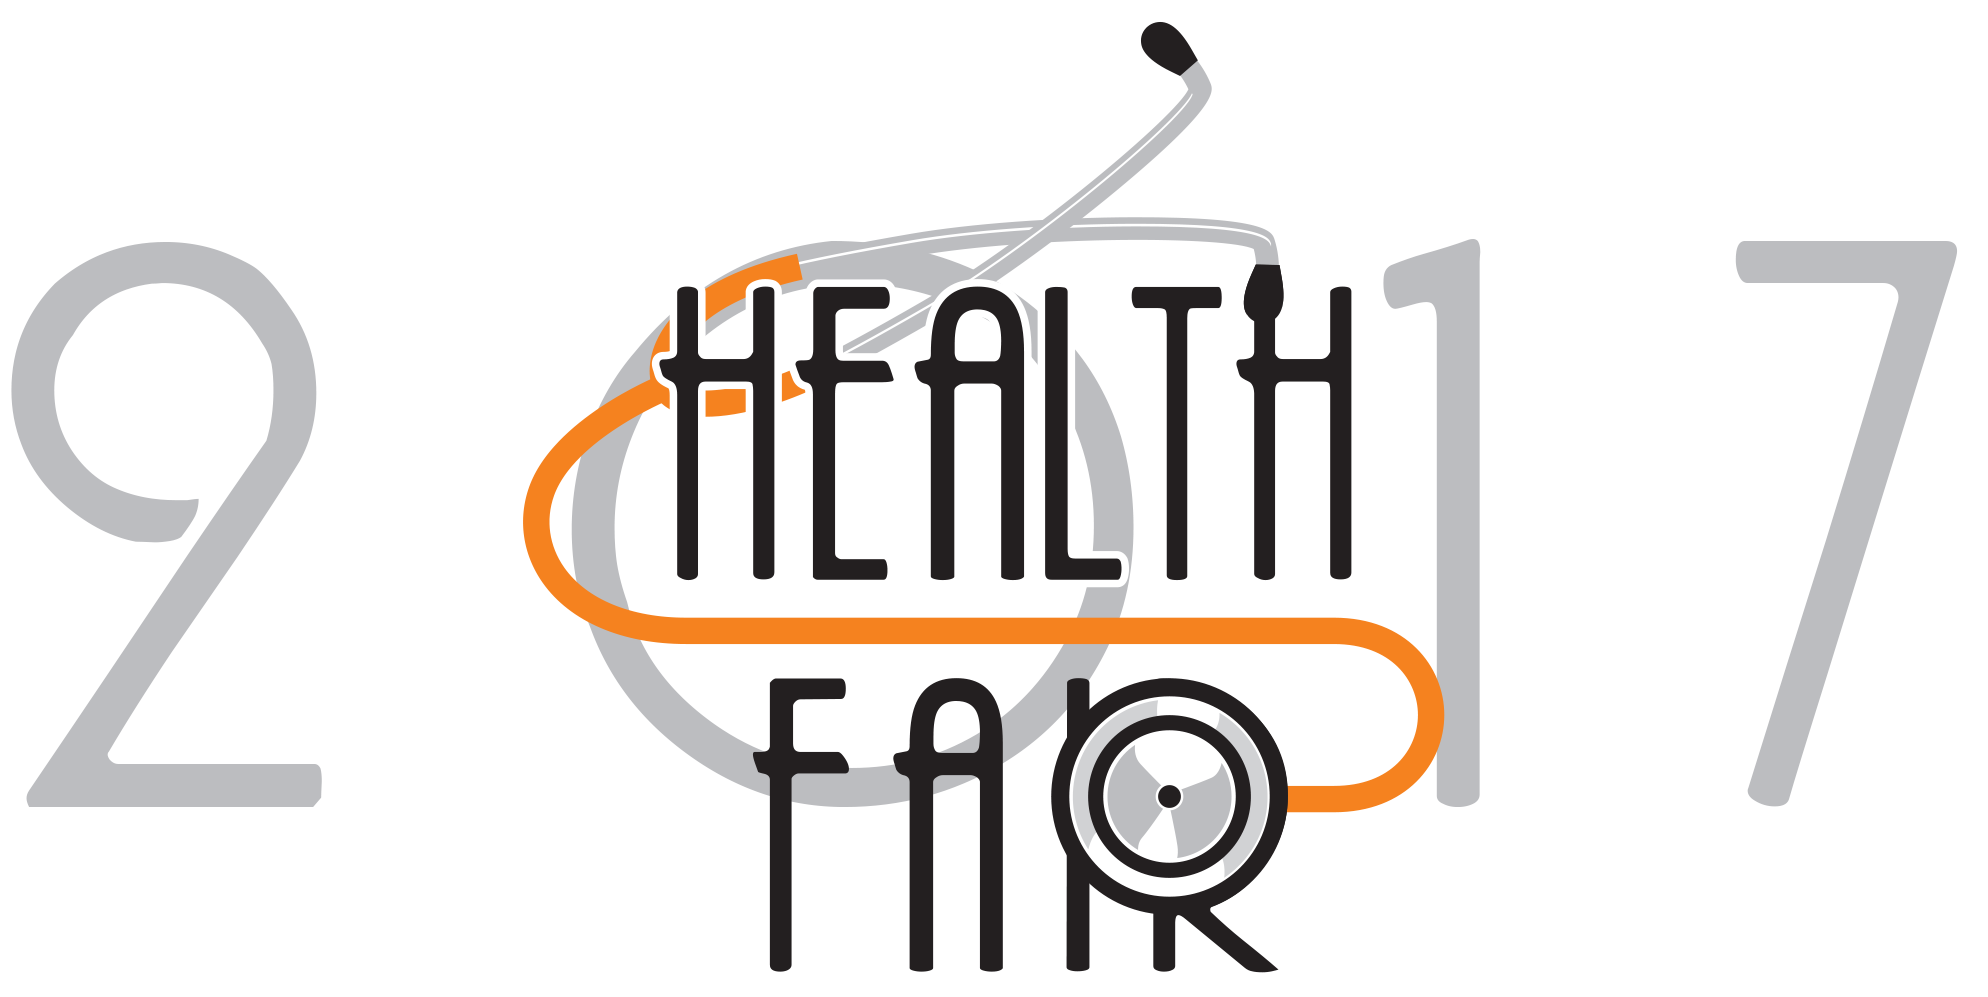 health fair How much does it cost for a health fair event there's no charge for a health fair event we love scheduling health fairs and we believe we do a great job on providing a fun, interactive, and educational environment for your employees.